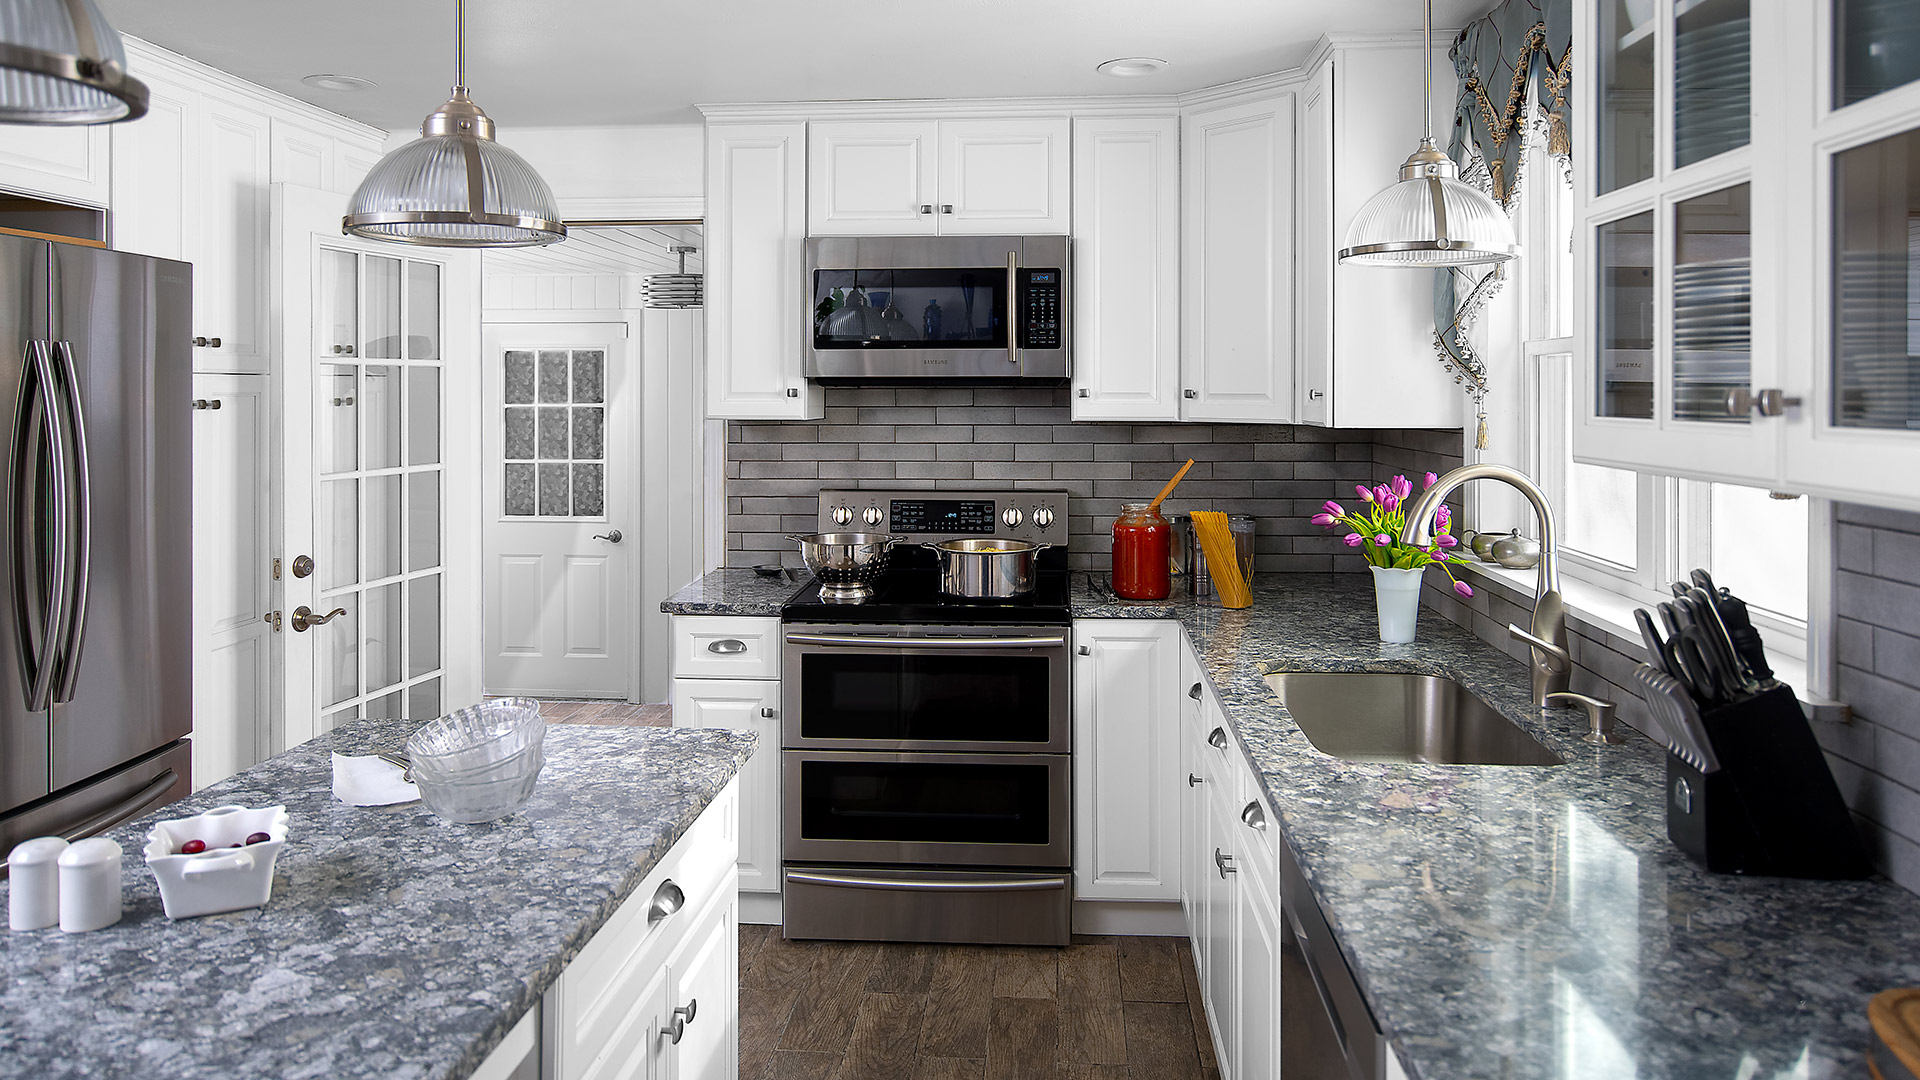 Choose Hallmark frost for a beautiful and bright white kitchen.